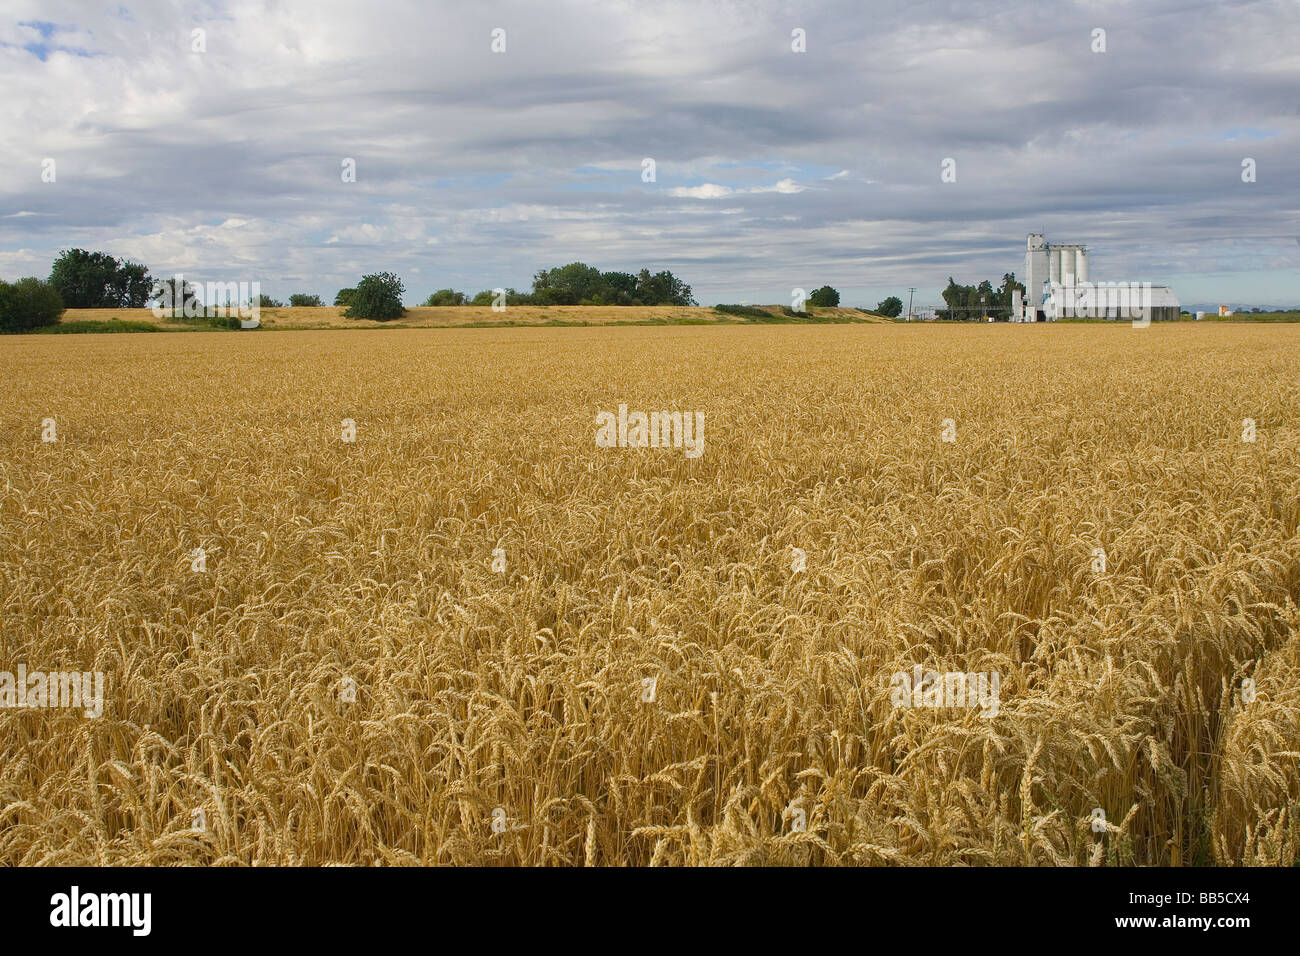 Wheat field in the Sacramento Valley near the Delta - Stock Image